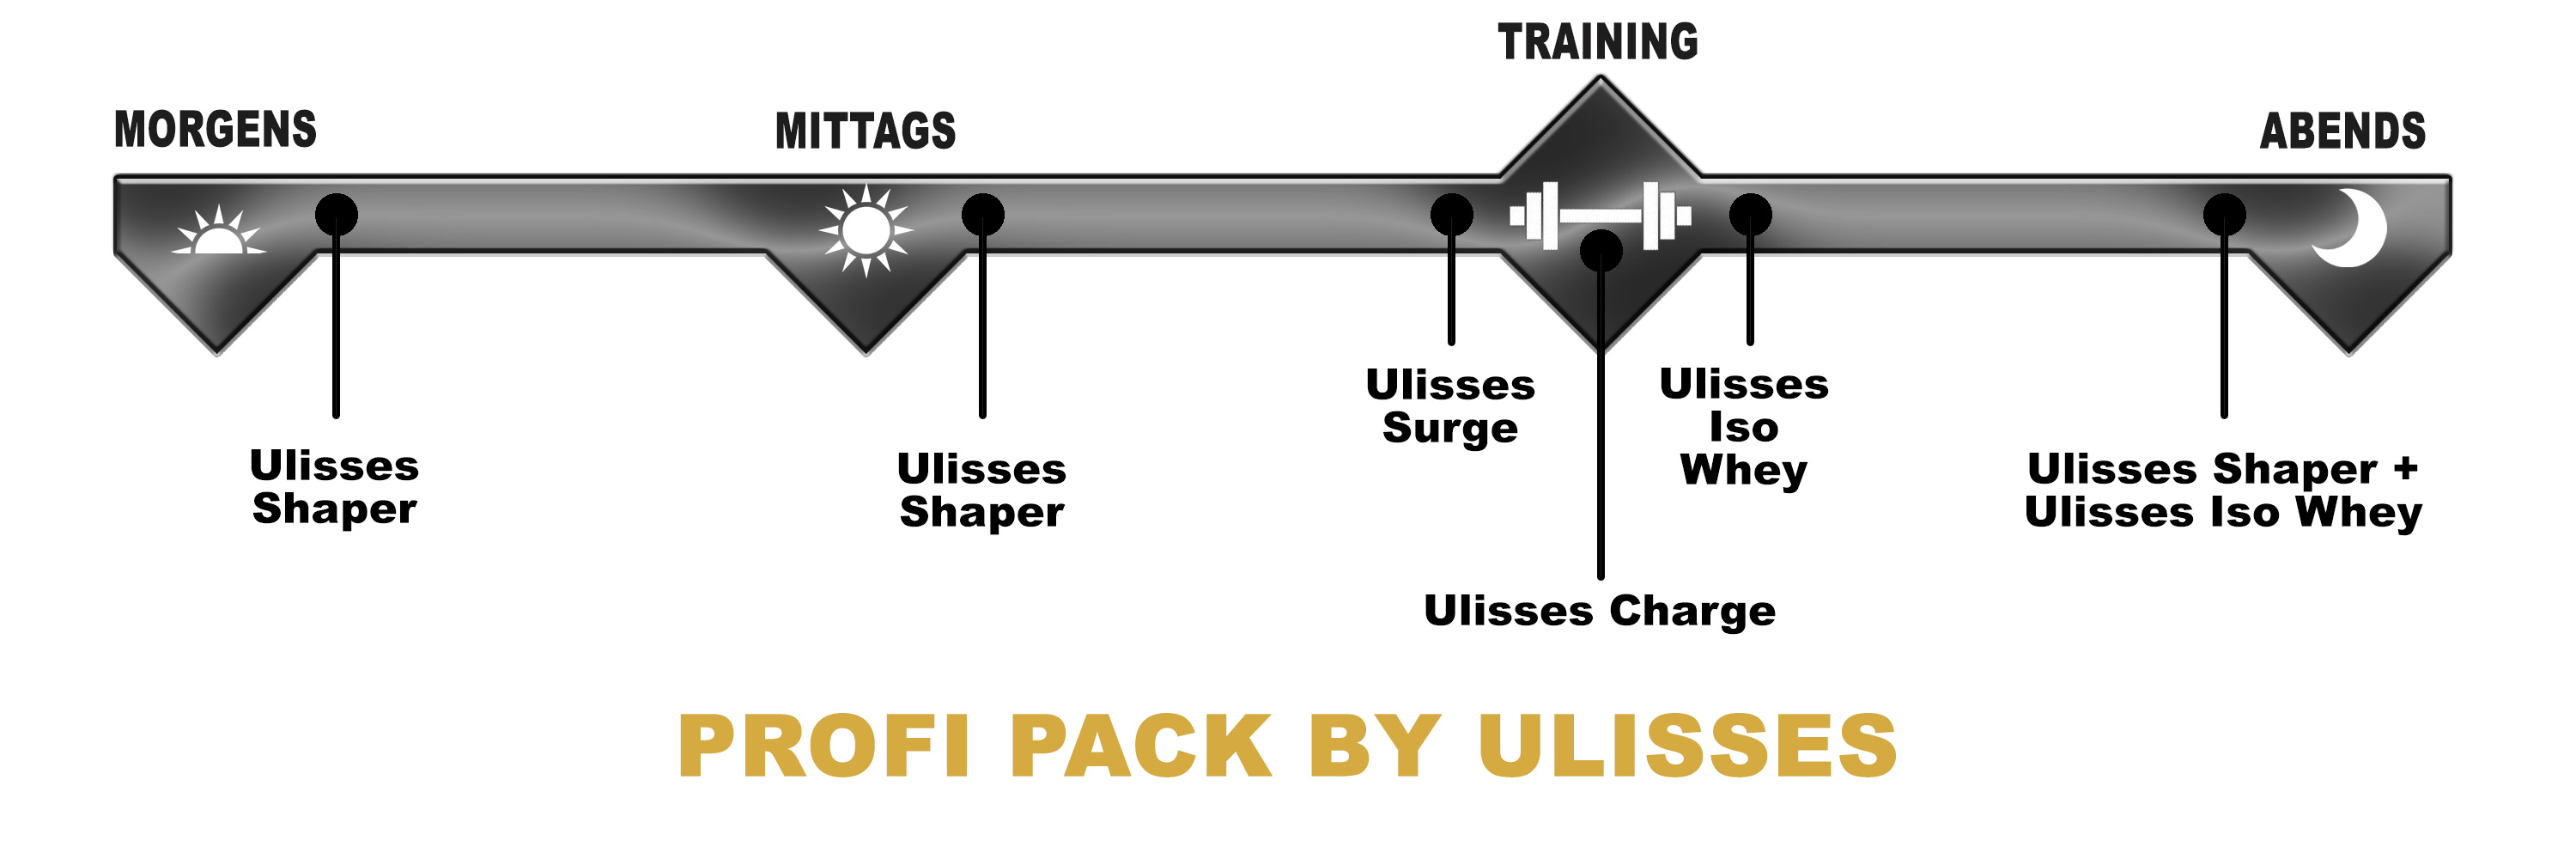 Ulisses Profi Pack